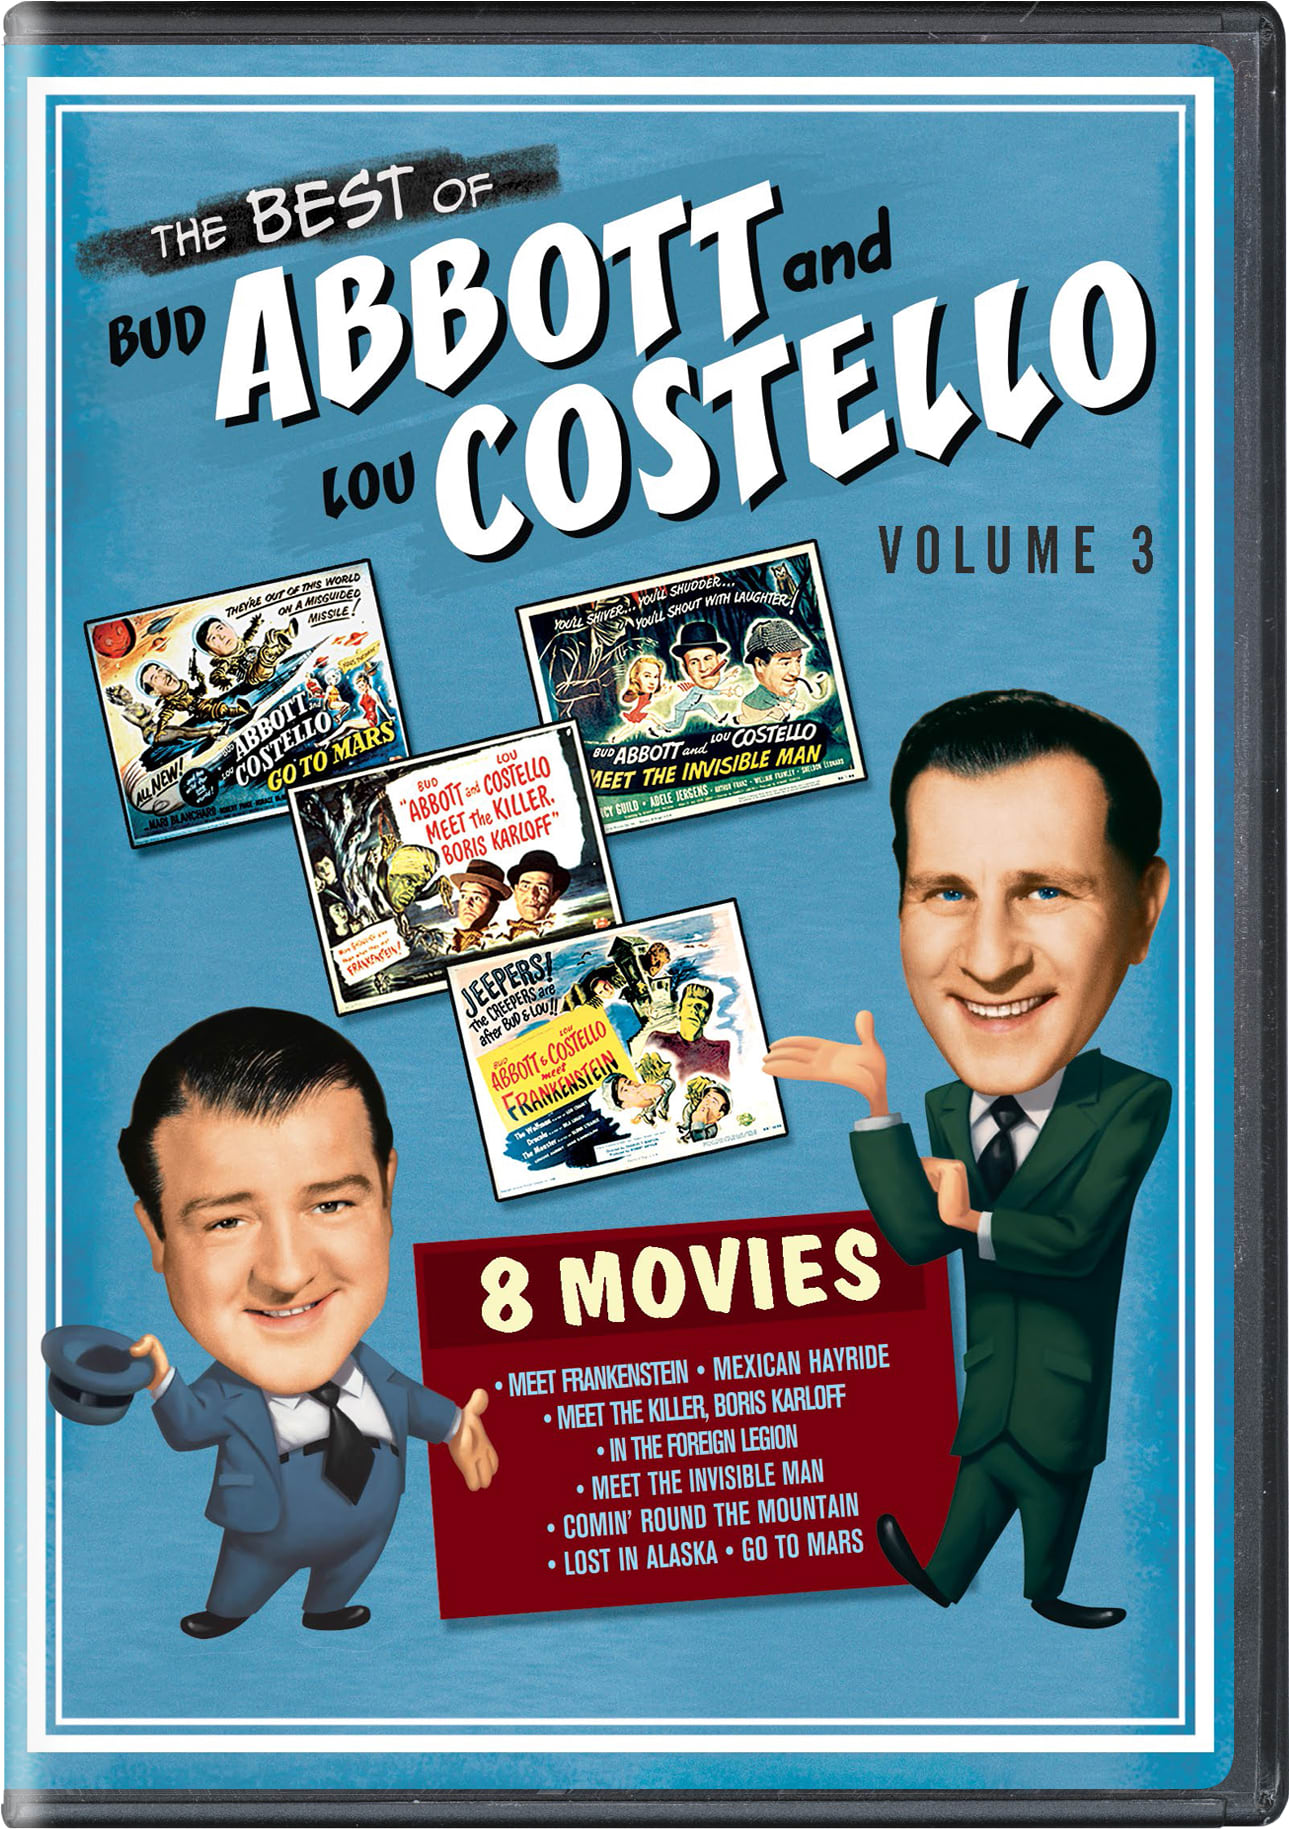 The Best of Bud Abbott and Lou Costello: Volume 3 [DVD]